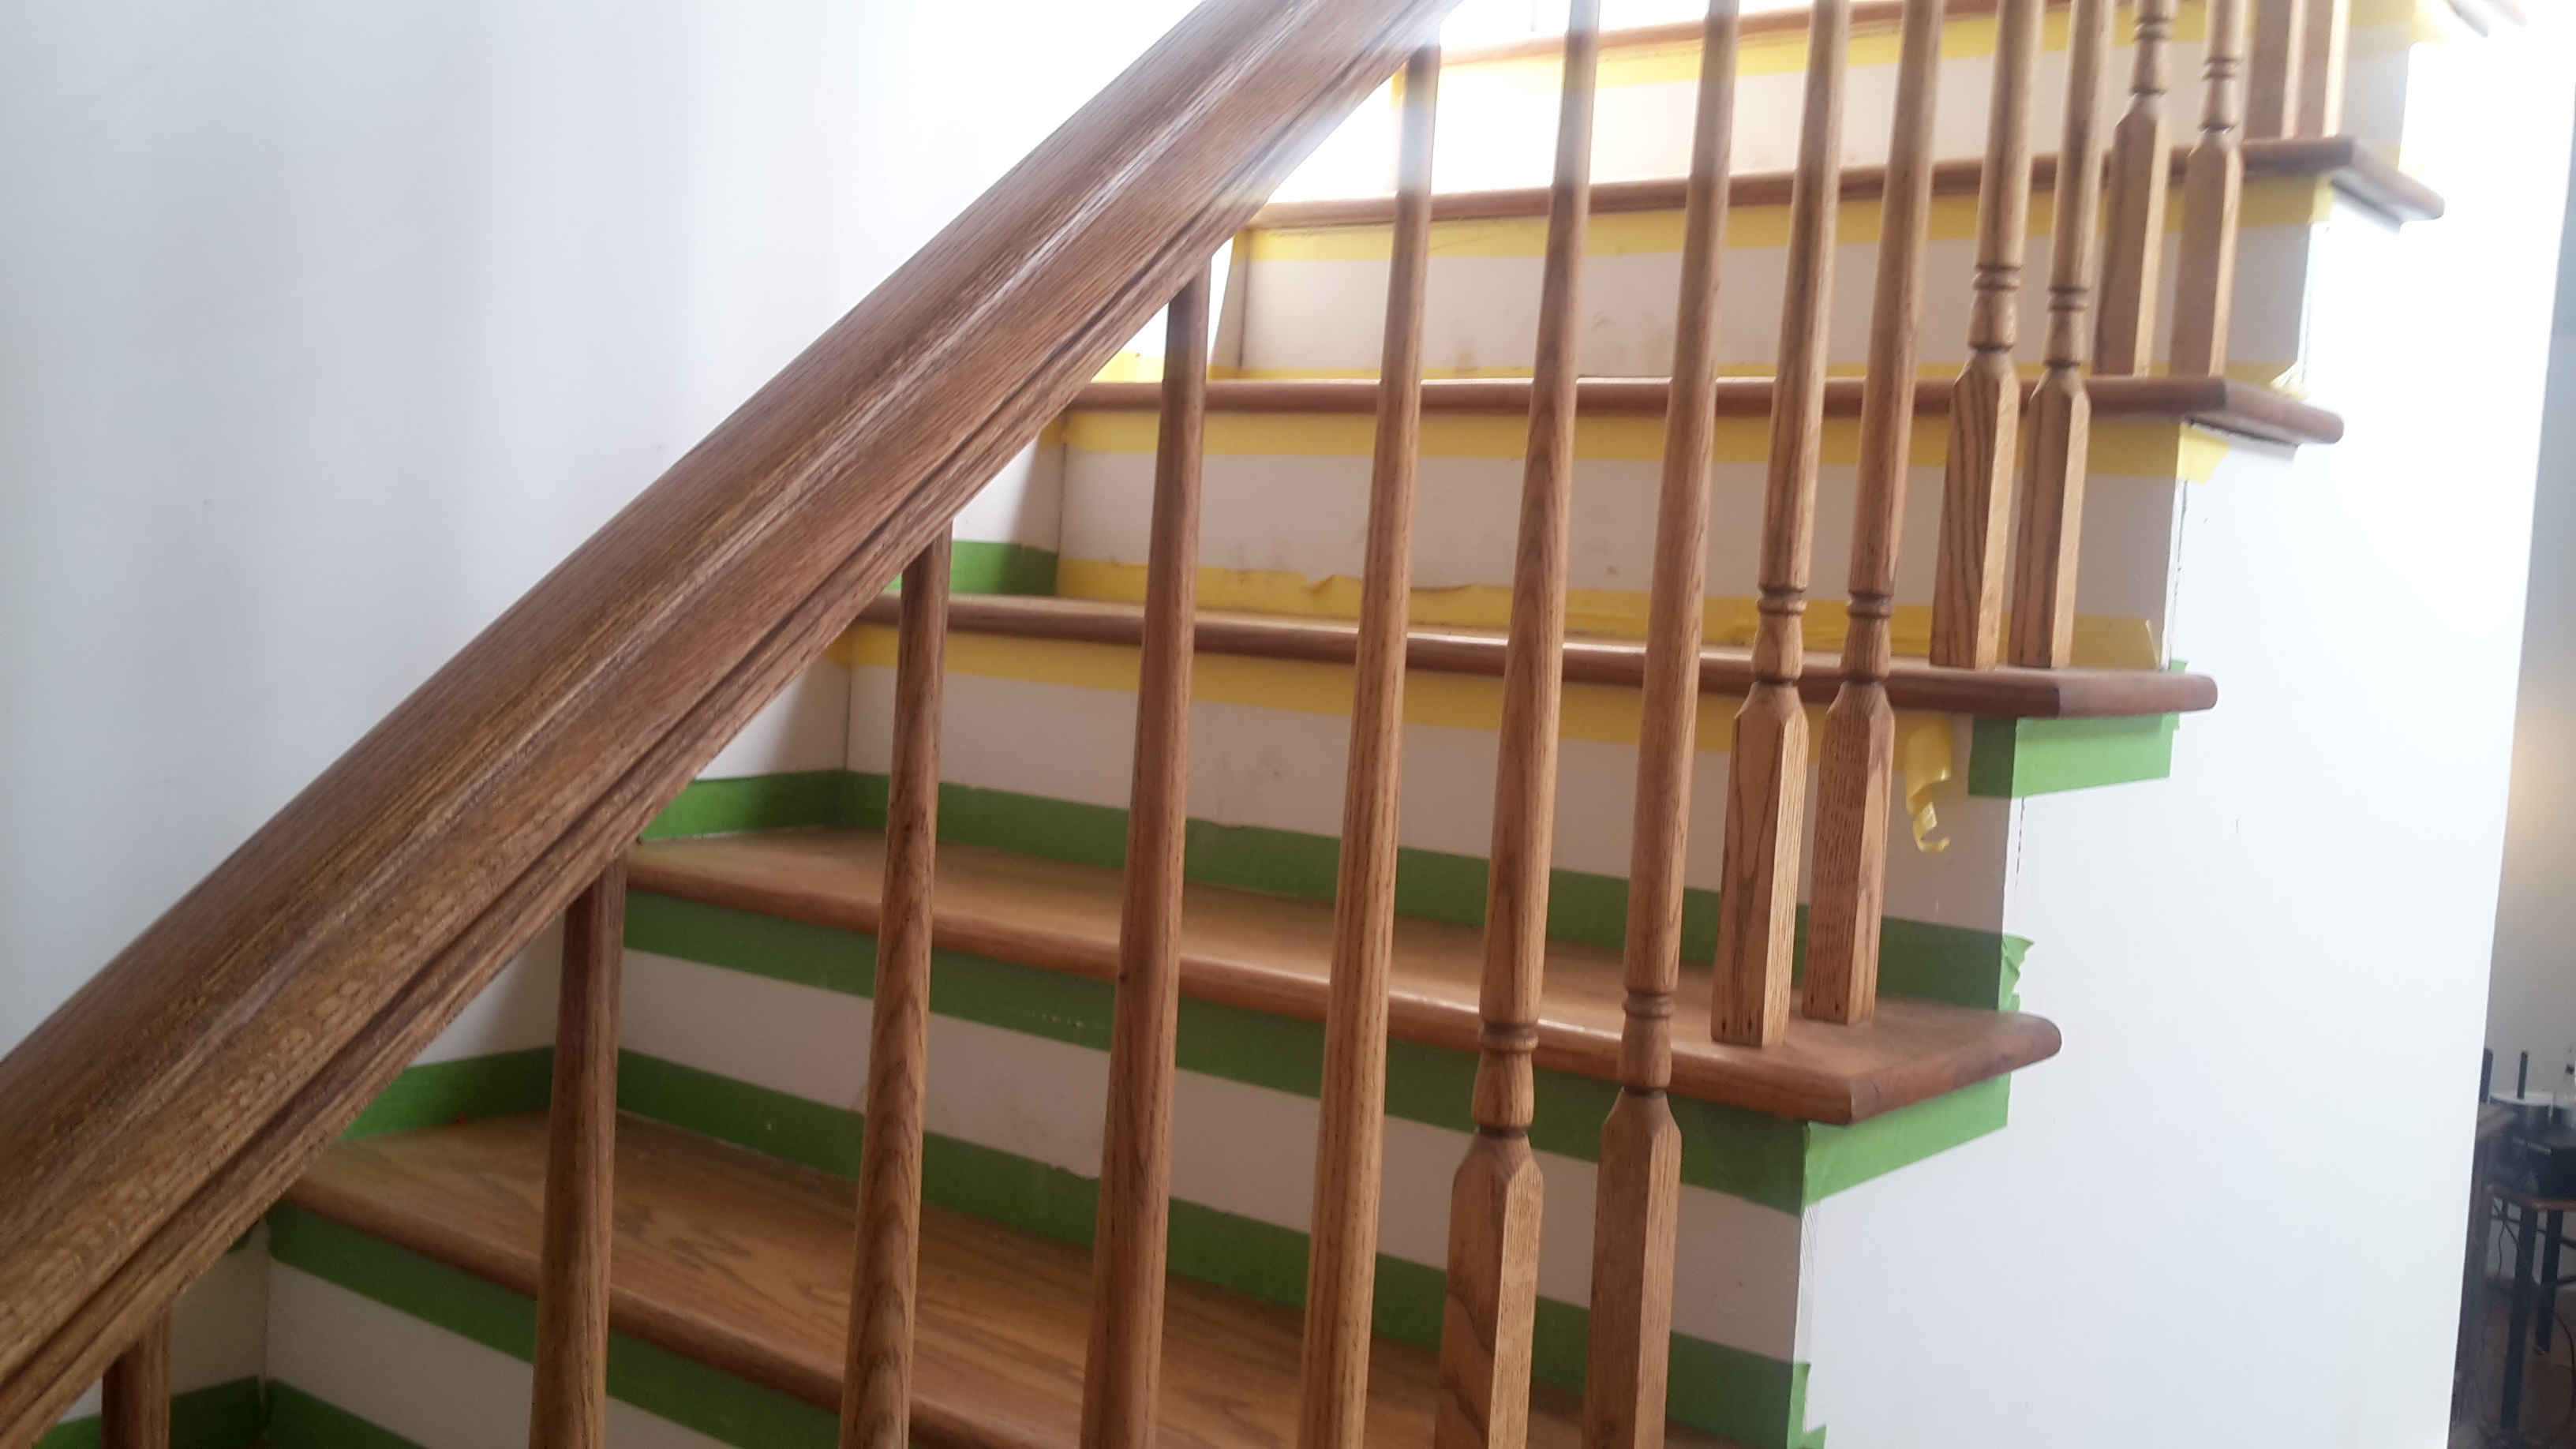 What is the typical height of a staircase railing?